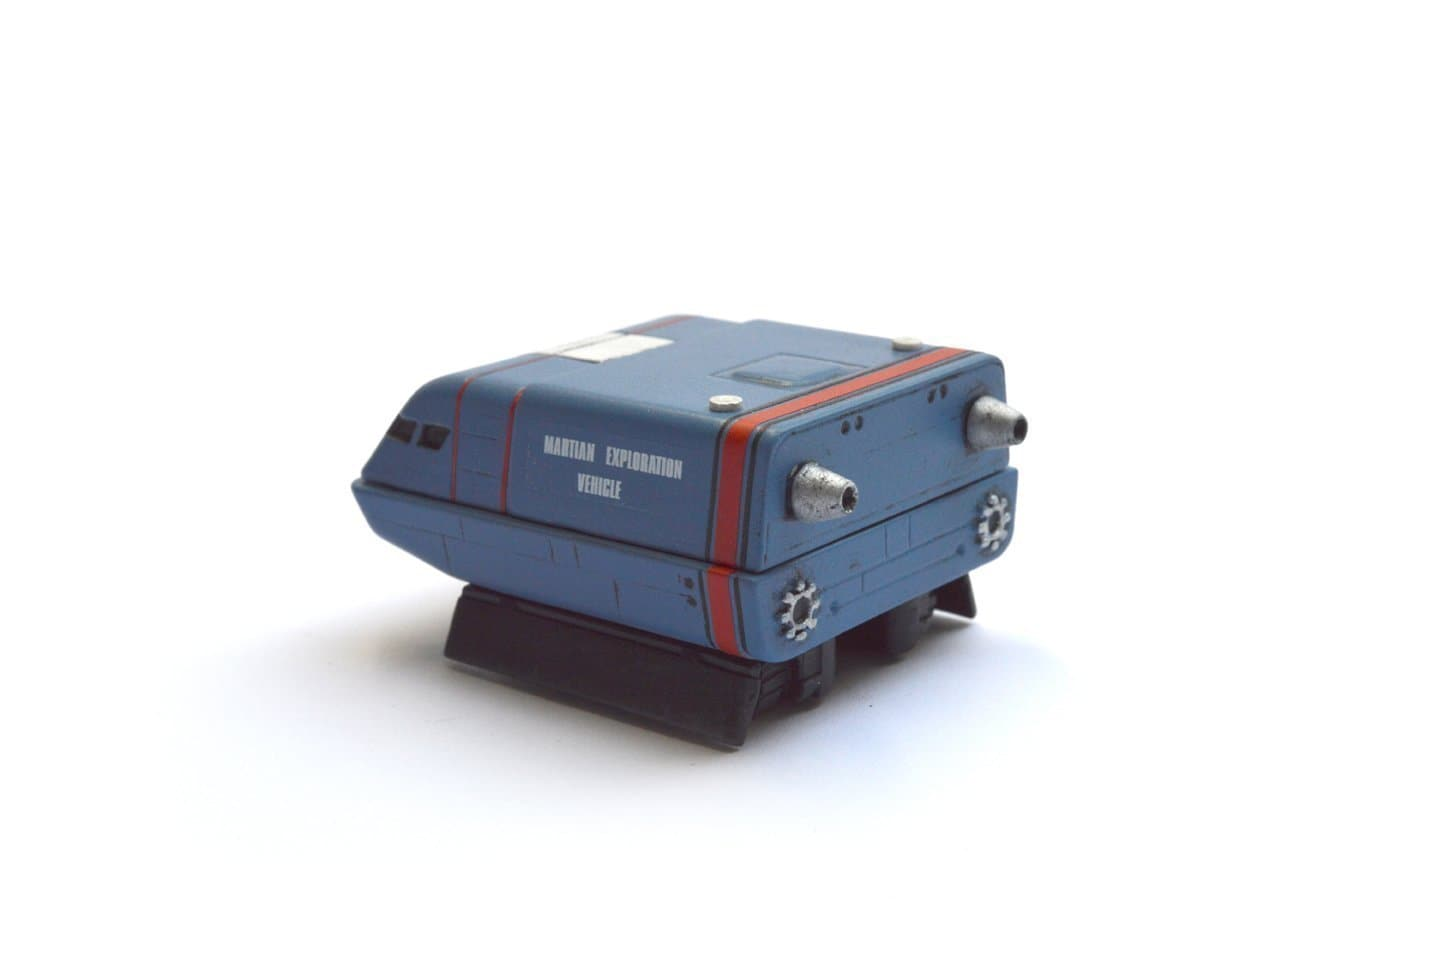 Martian Exploration Vehicle (MEV) From Captain Scarlet - The Gerry Anderson Store